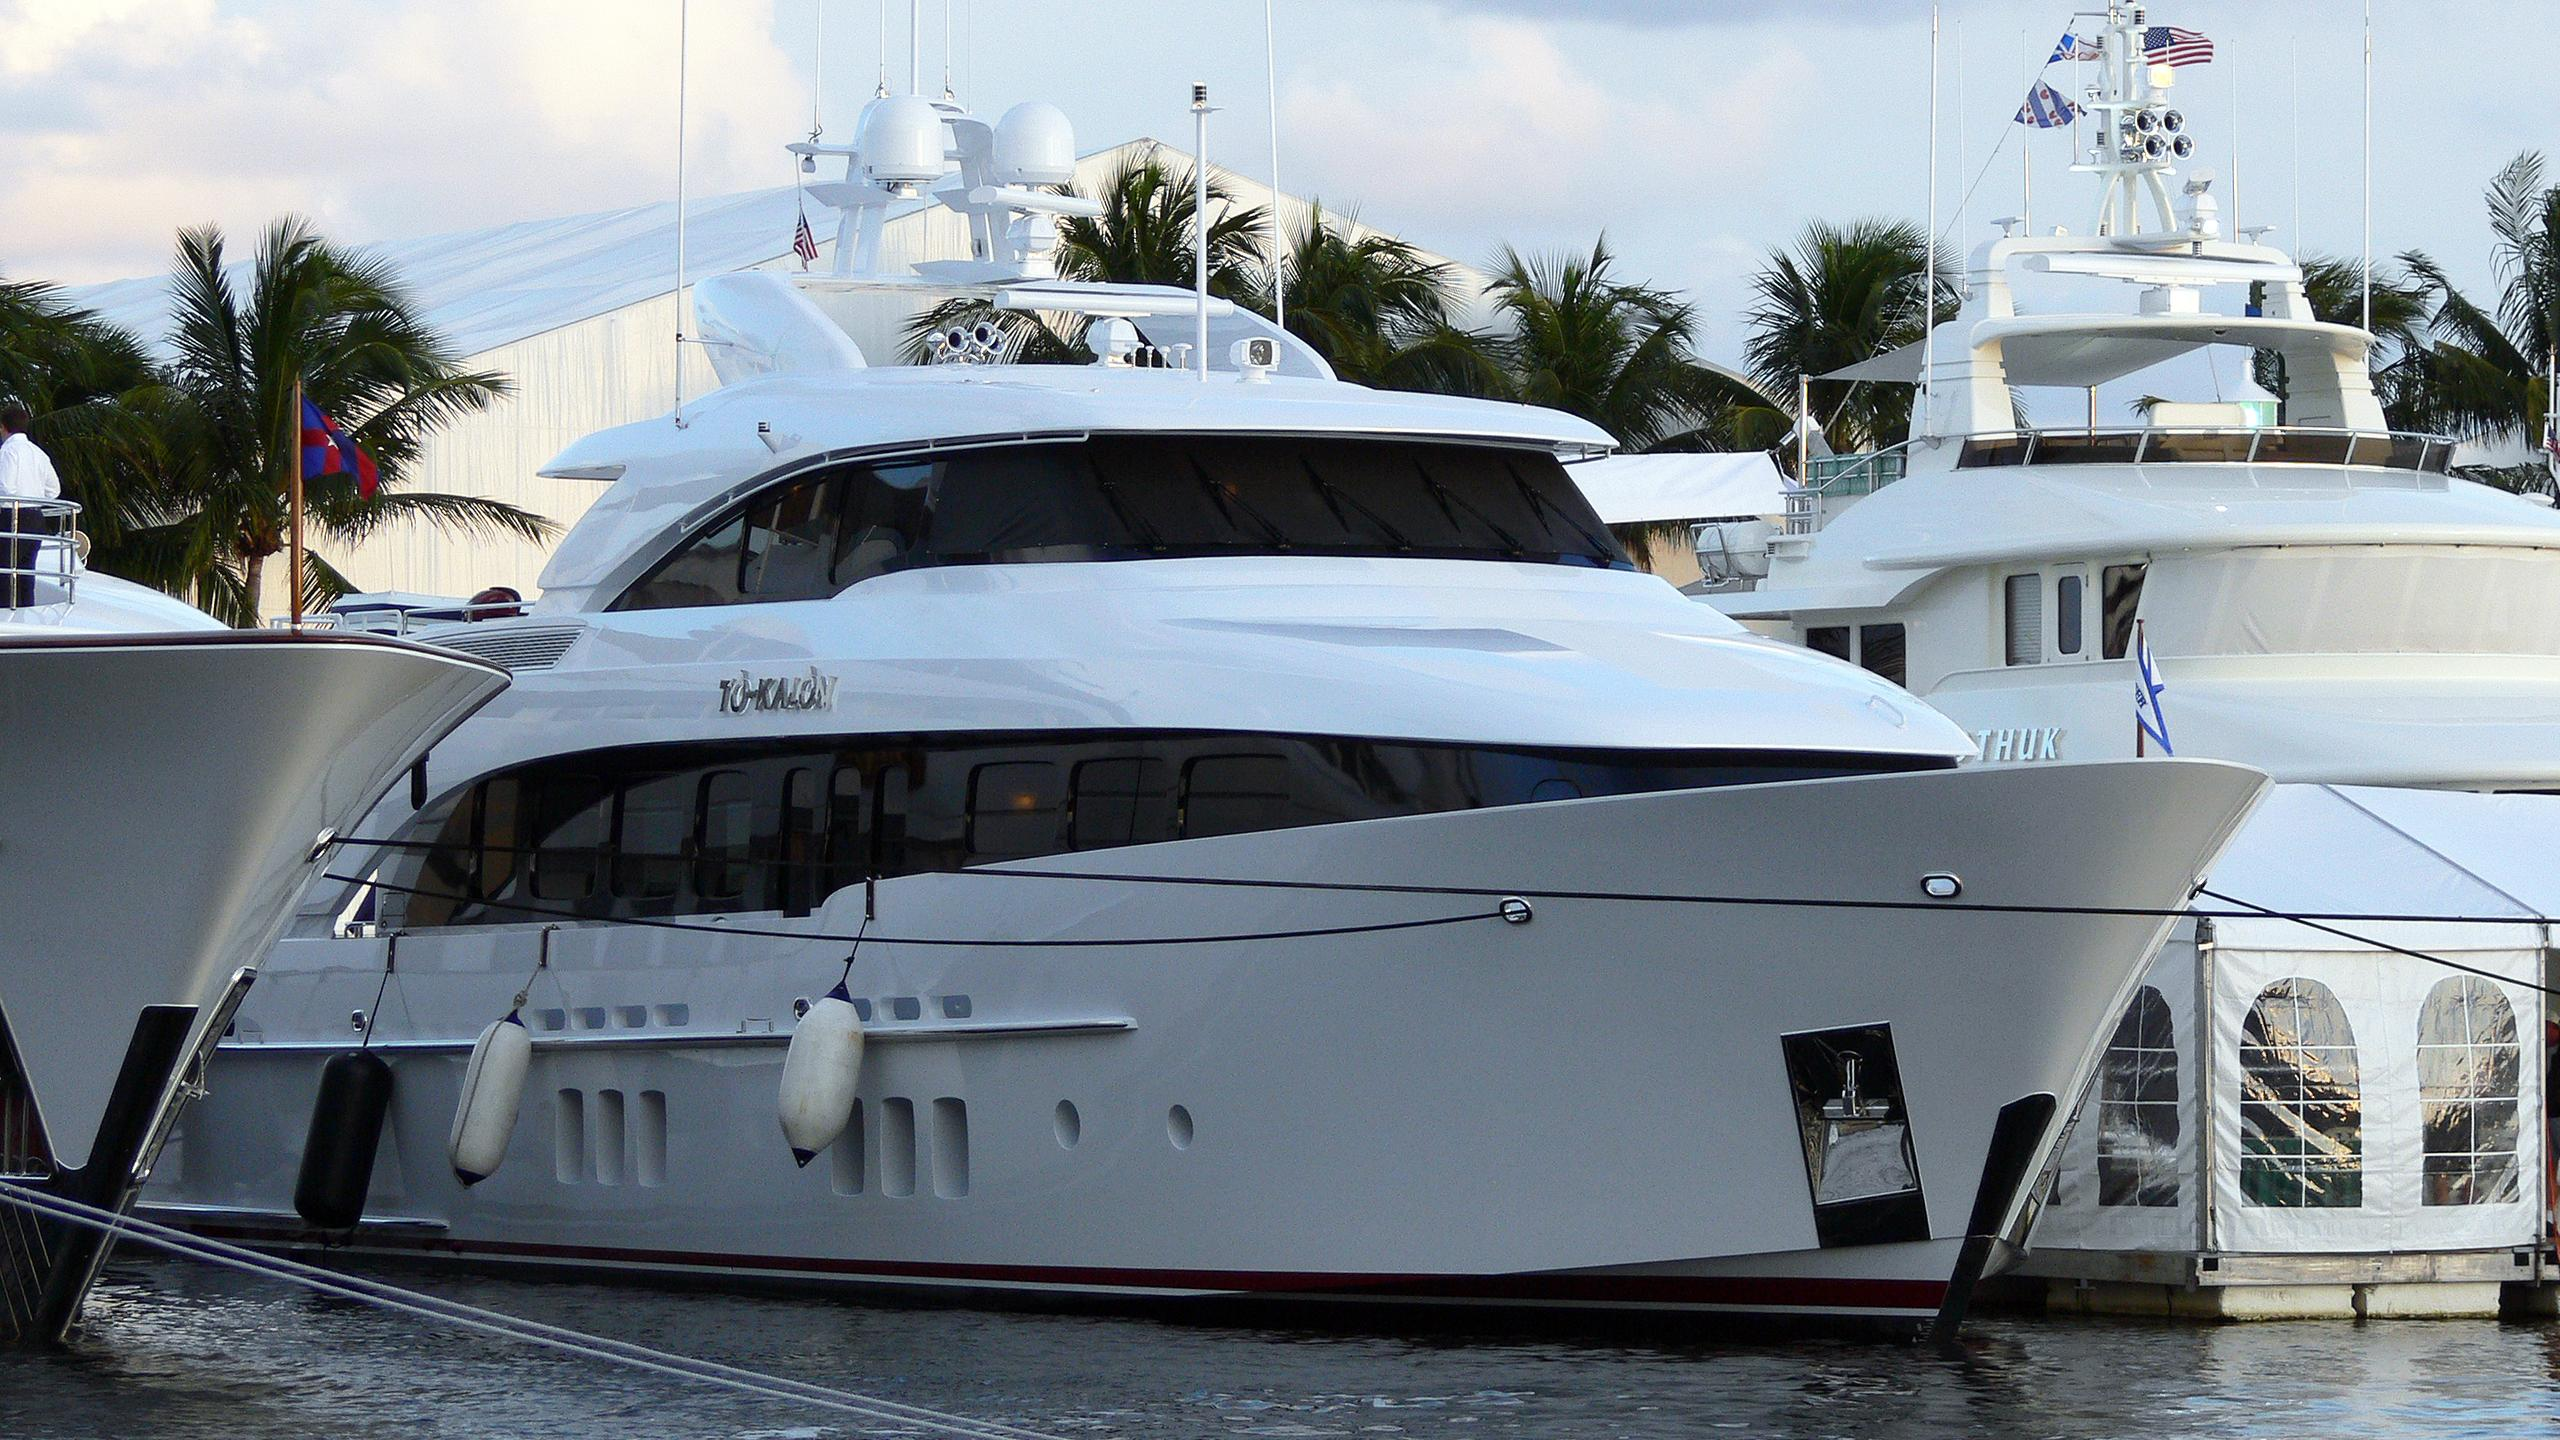 to-kalon-motor-yacht-burger-boat-2008-31m-front-profile